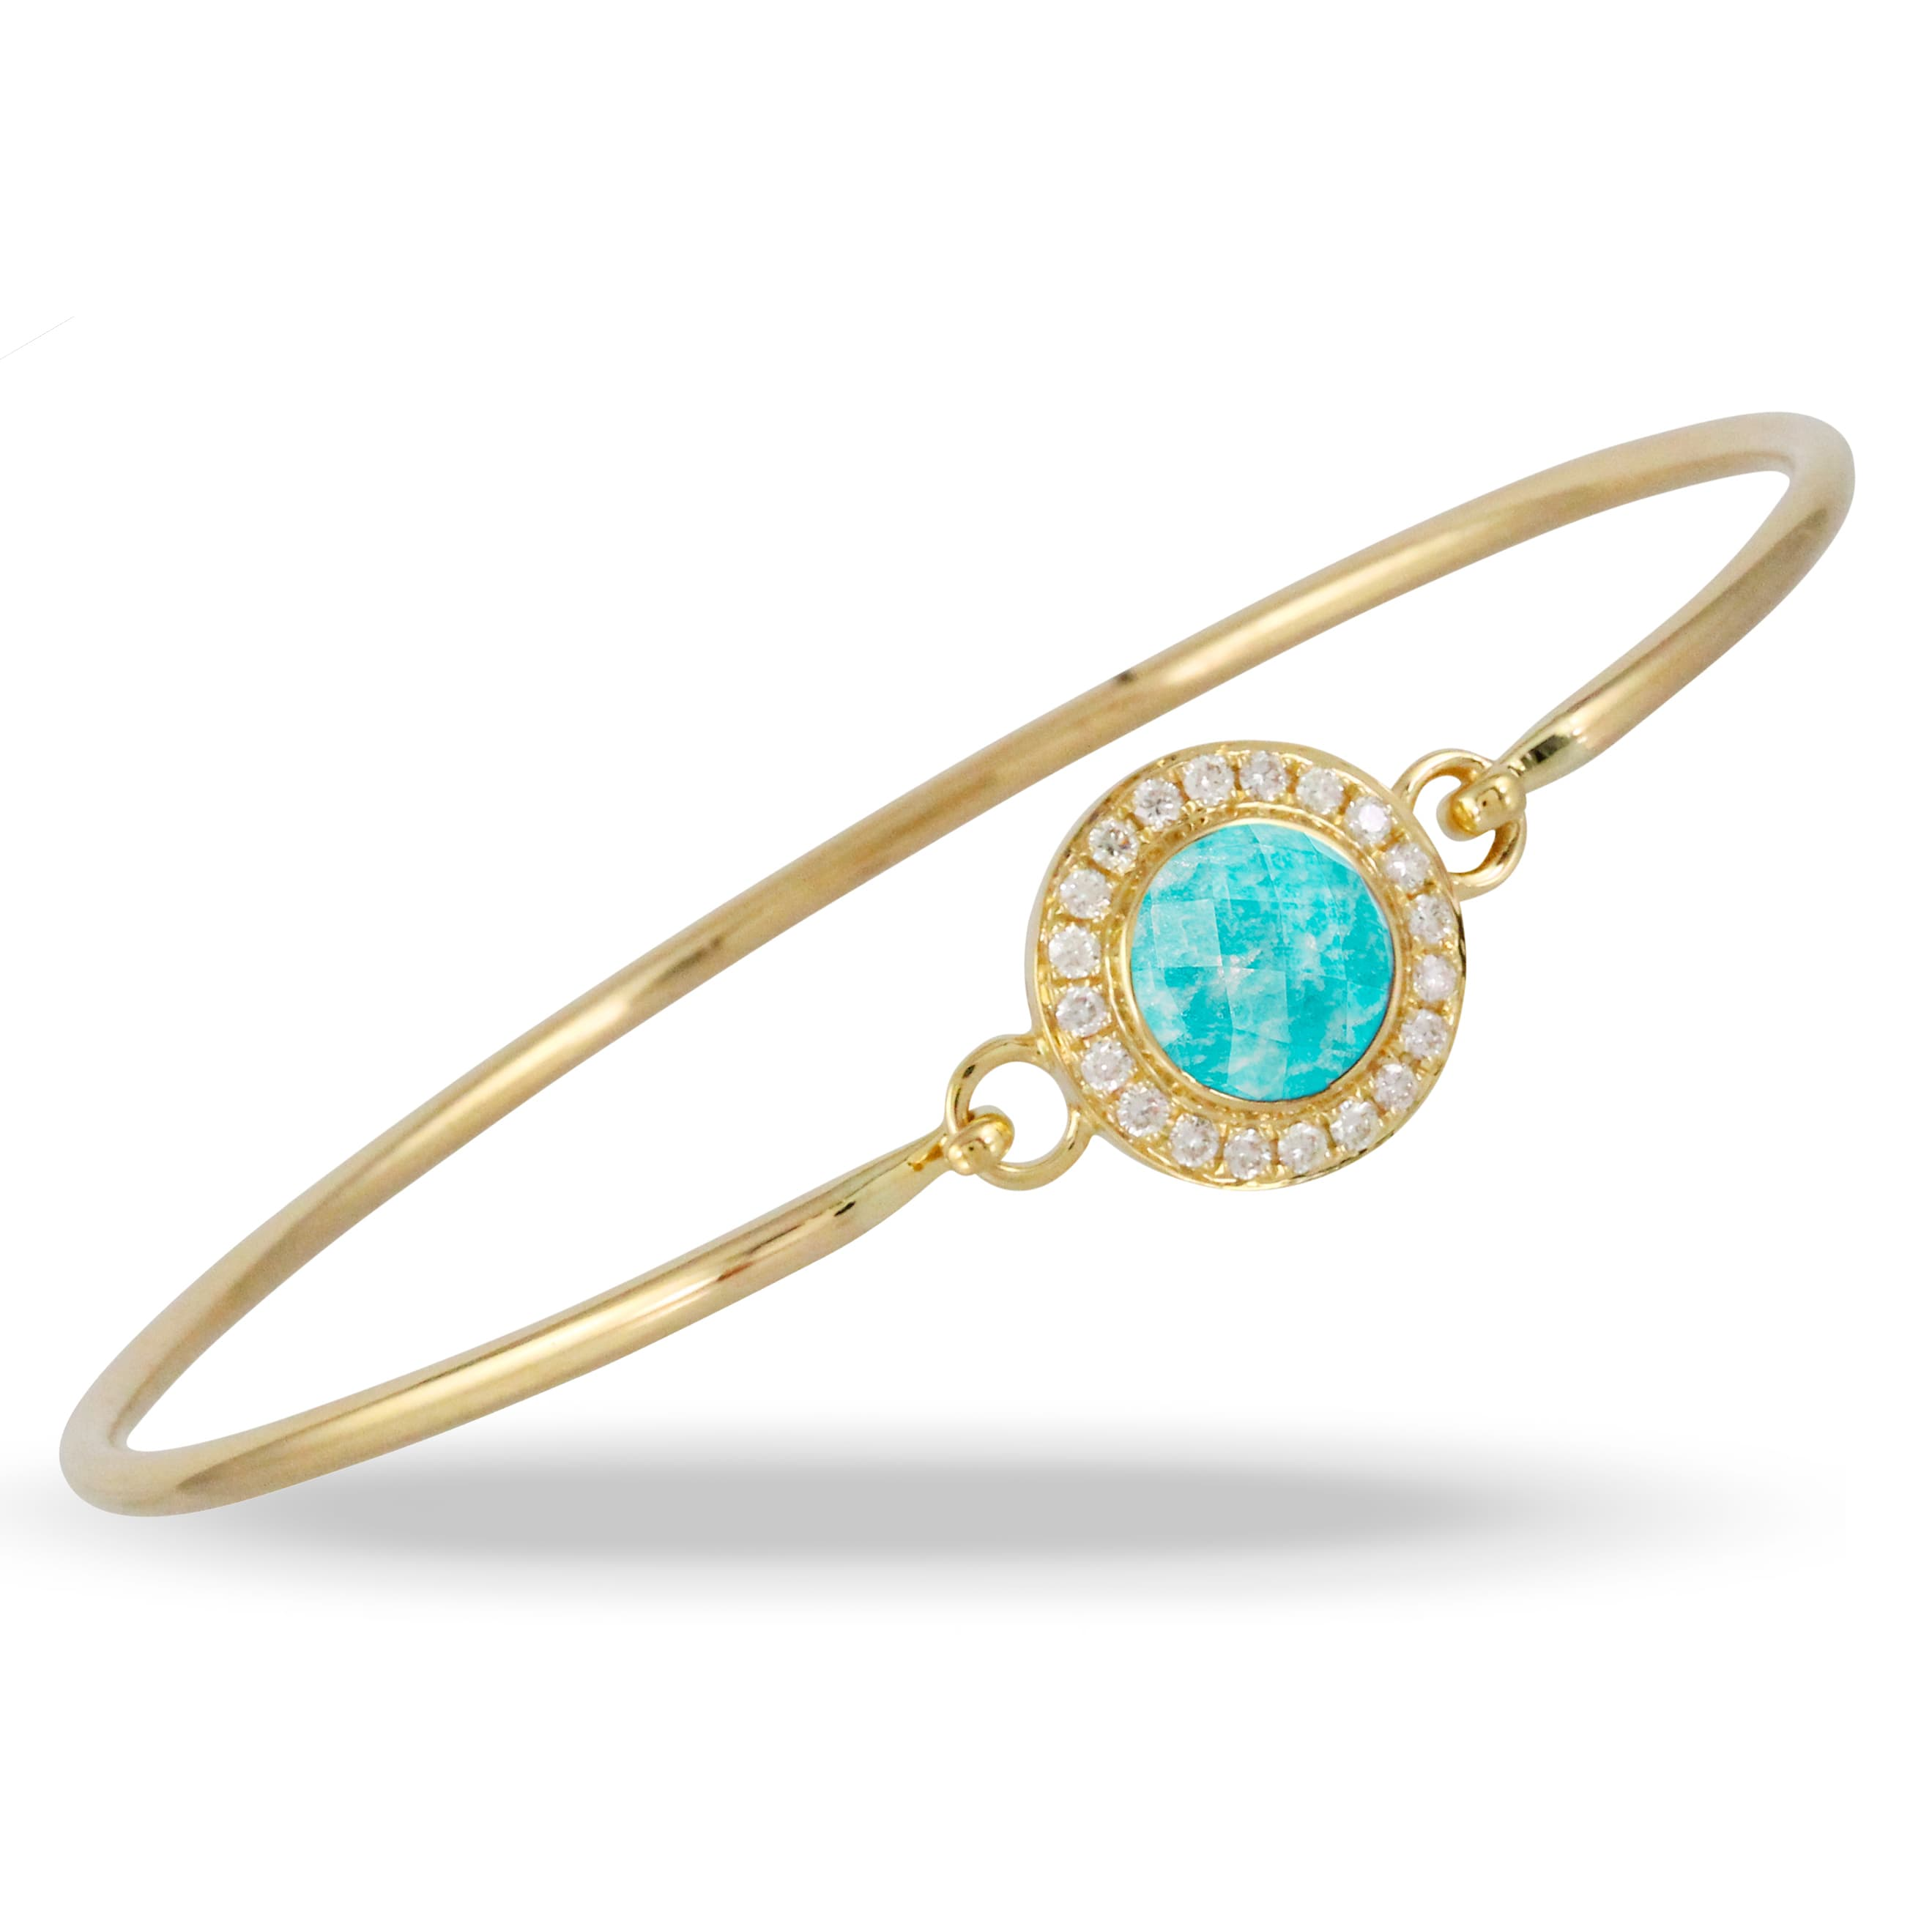 18K YELLOW GOLD DIAMOND BANGLE WITH CLEAR QUARTZ OVER AMAZONITE